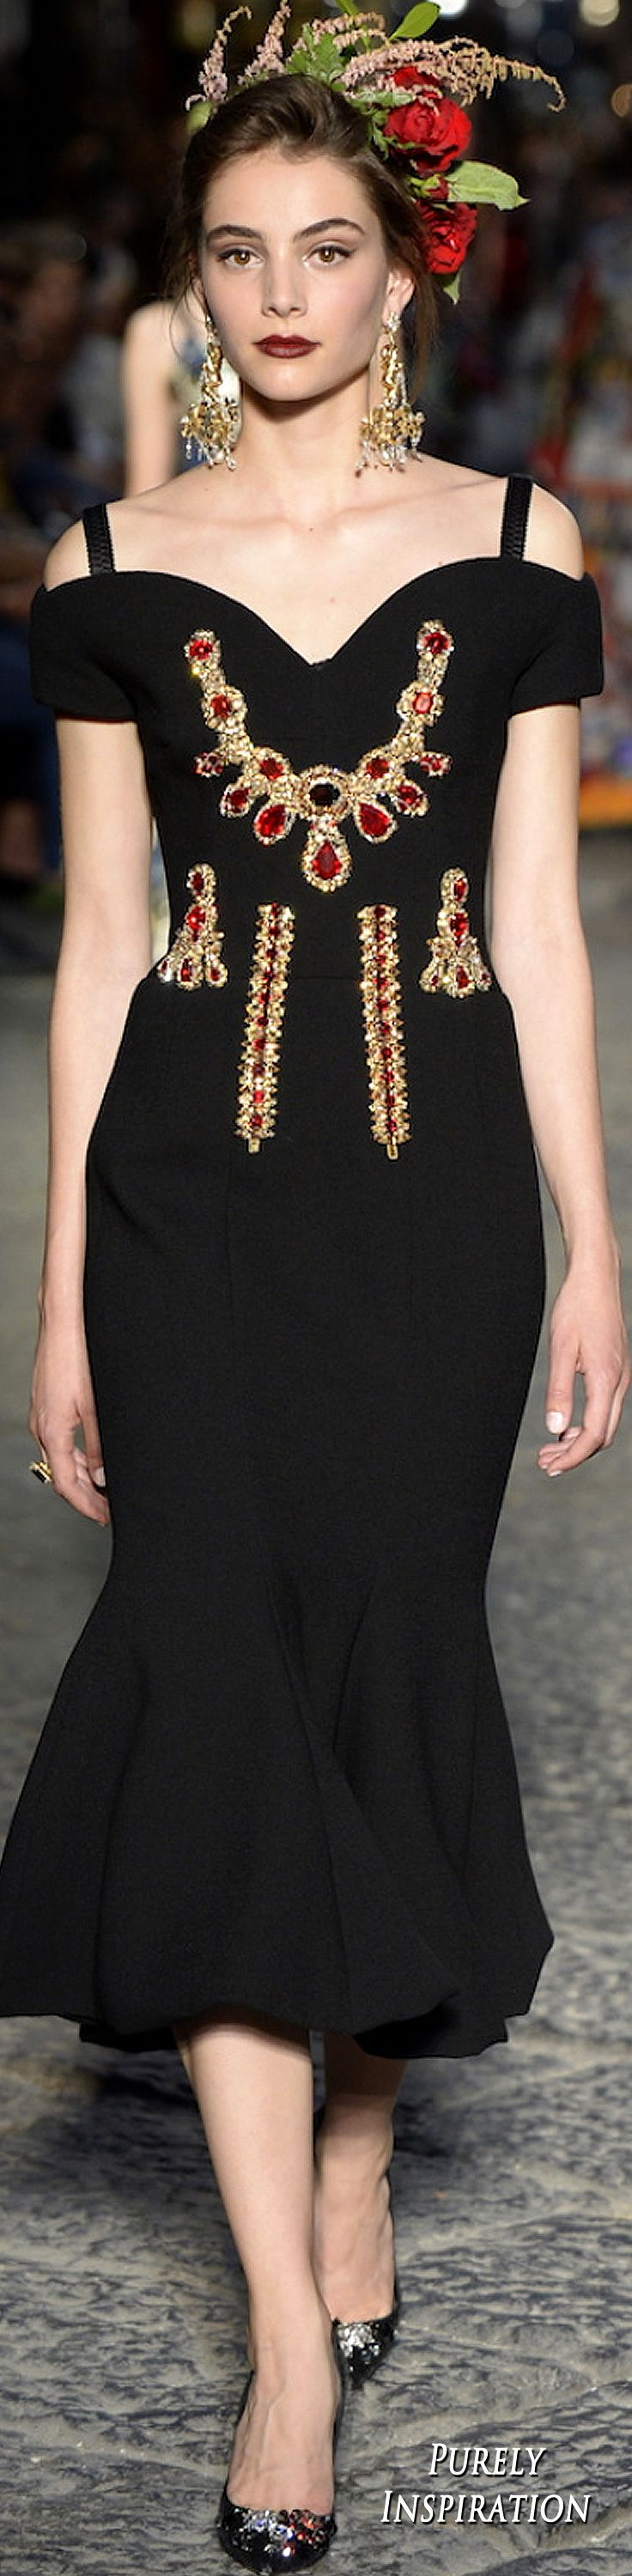 Dolce & Gabbana Fall 2016 Alta Moda Collection Women's Fashion | Purely Inspiration